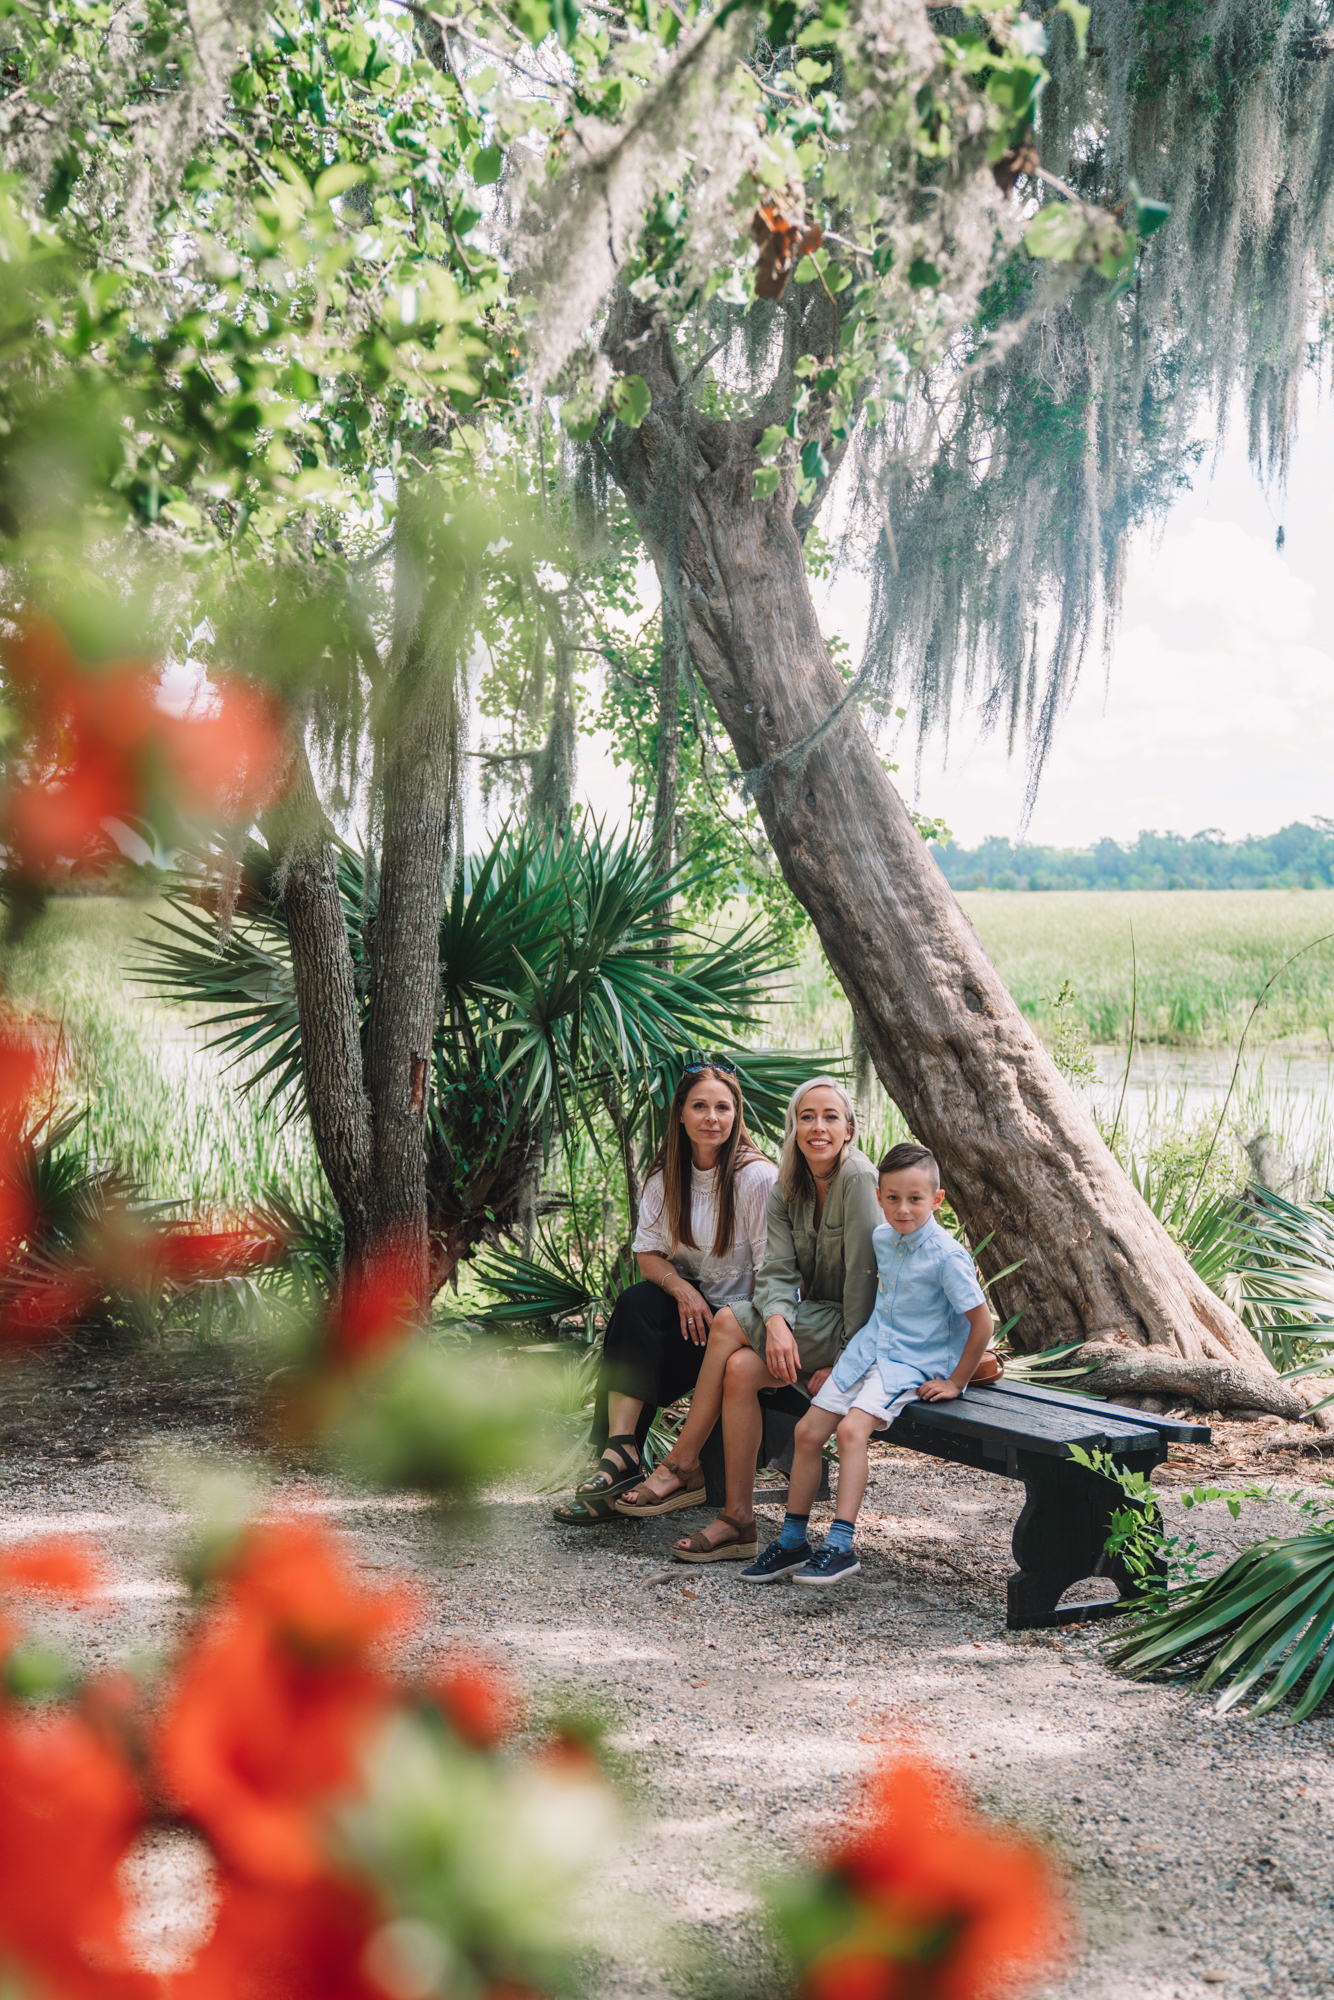 Things to do in Charleston sc with kids - a family sitting on a bench with tupelo trees with spanish moss hanging.